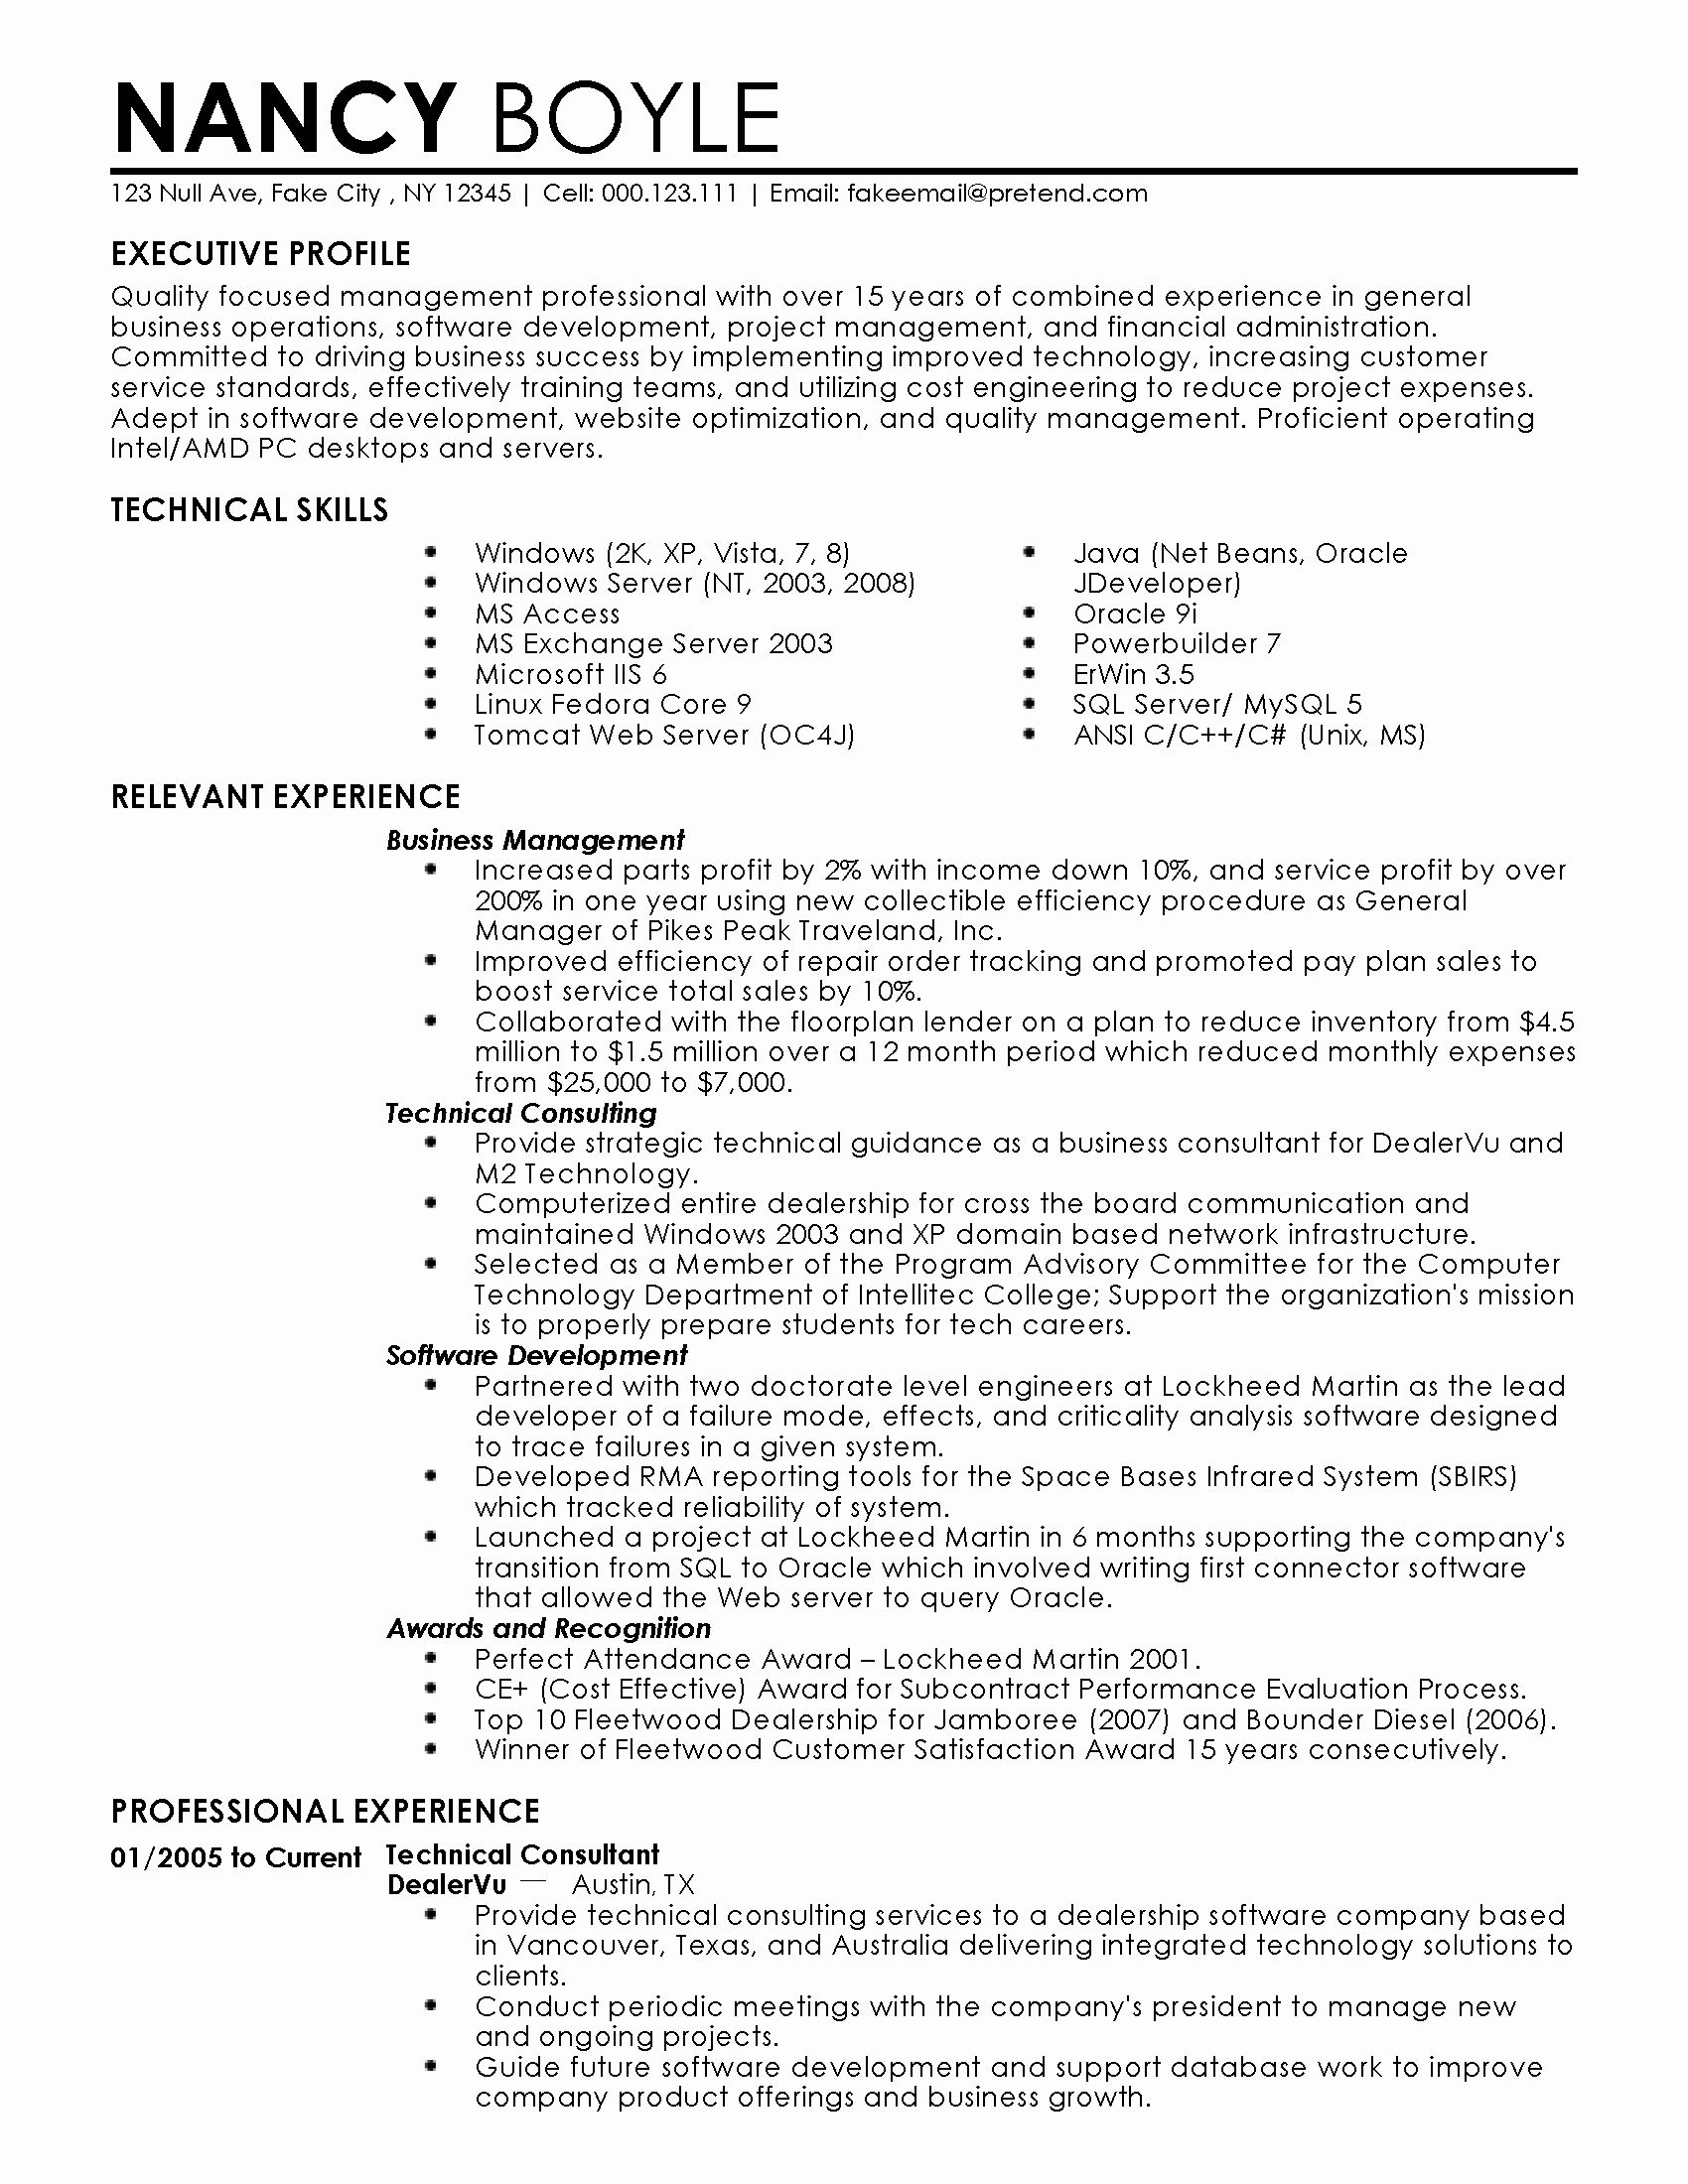 Business administration resume examples fresh professional